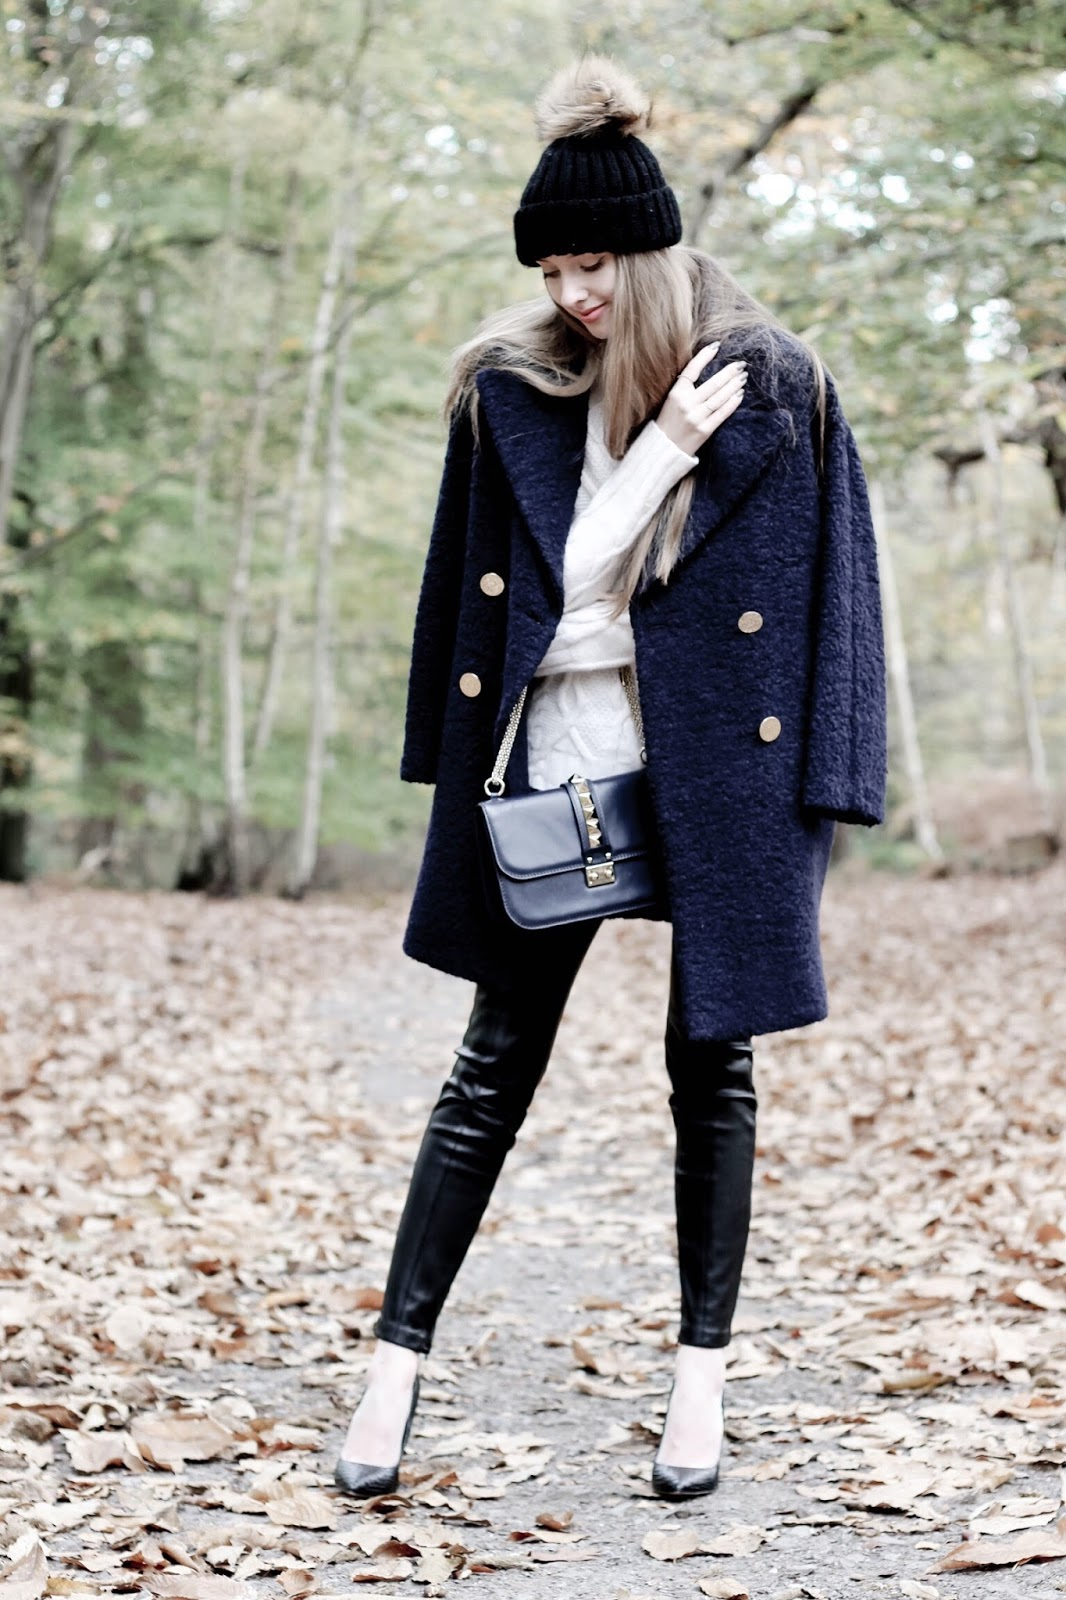 Fashion Blog How to Style a Teddybear Coat for Winter